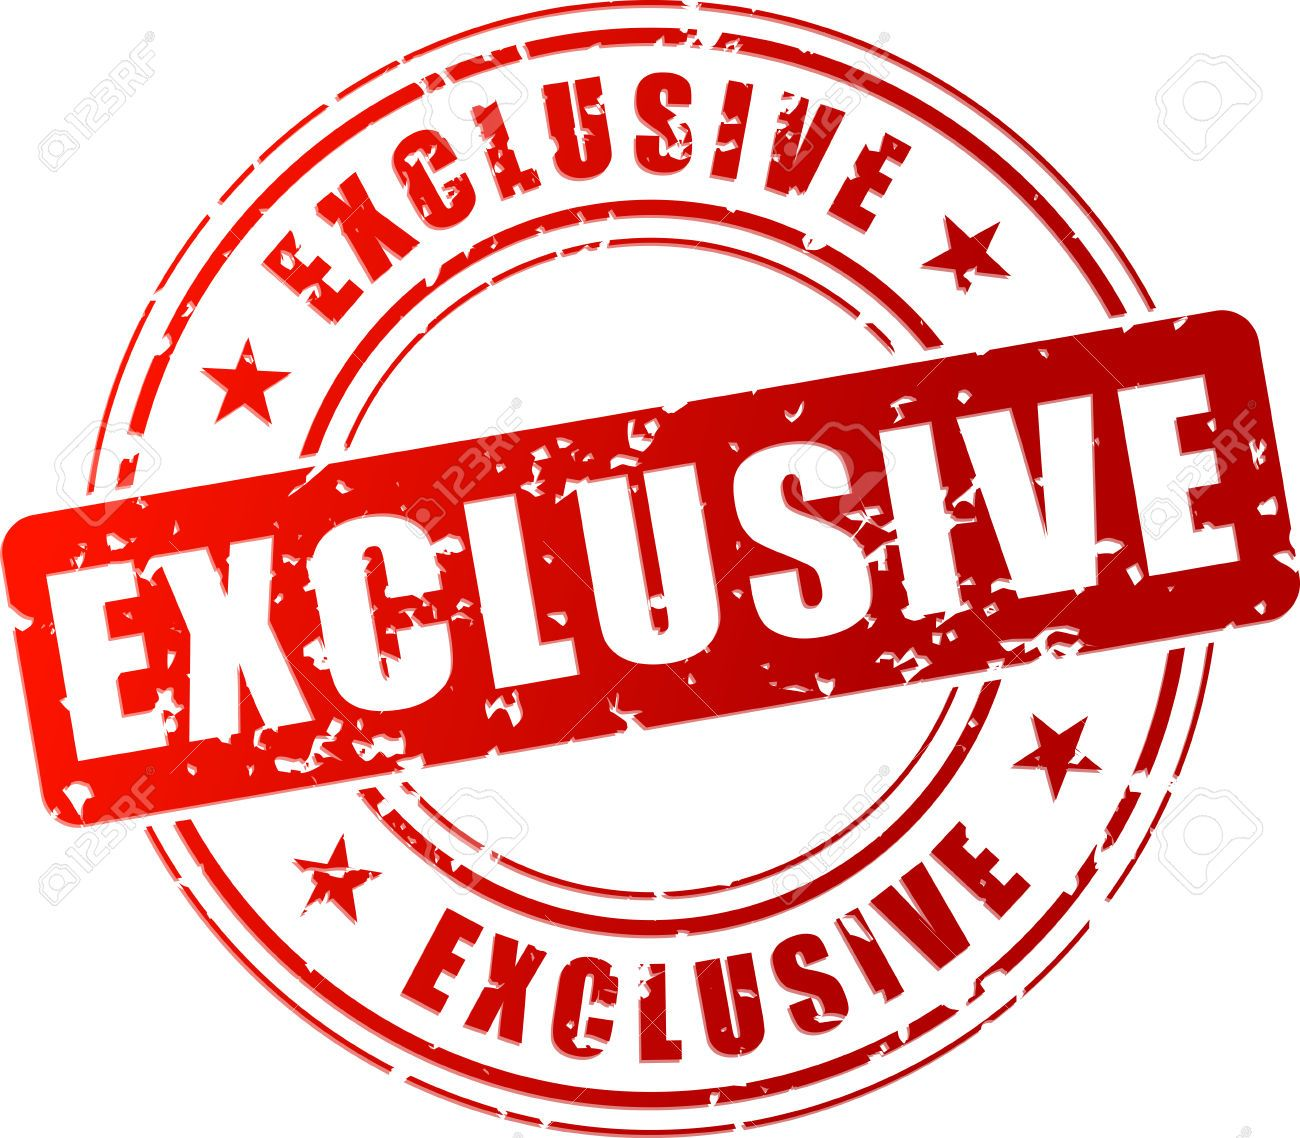 Exclusive Betting Bonuses Exclusive Free Bets Logos